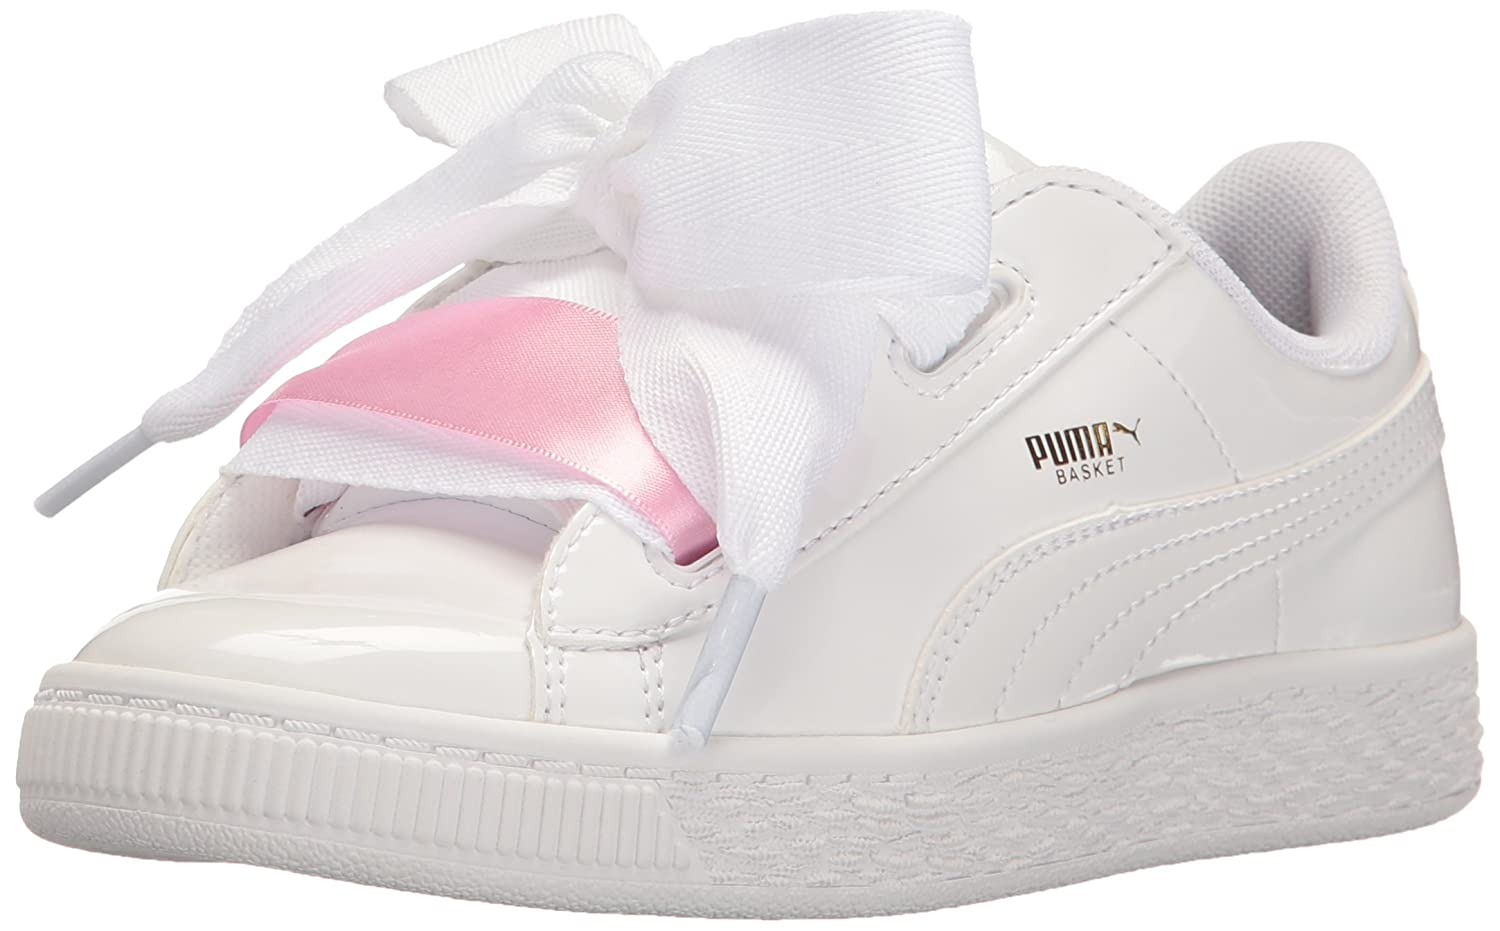 quality design 92653 06dd9 PUMA Kids' Basket Heart Patent PS Sneaker